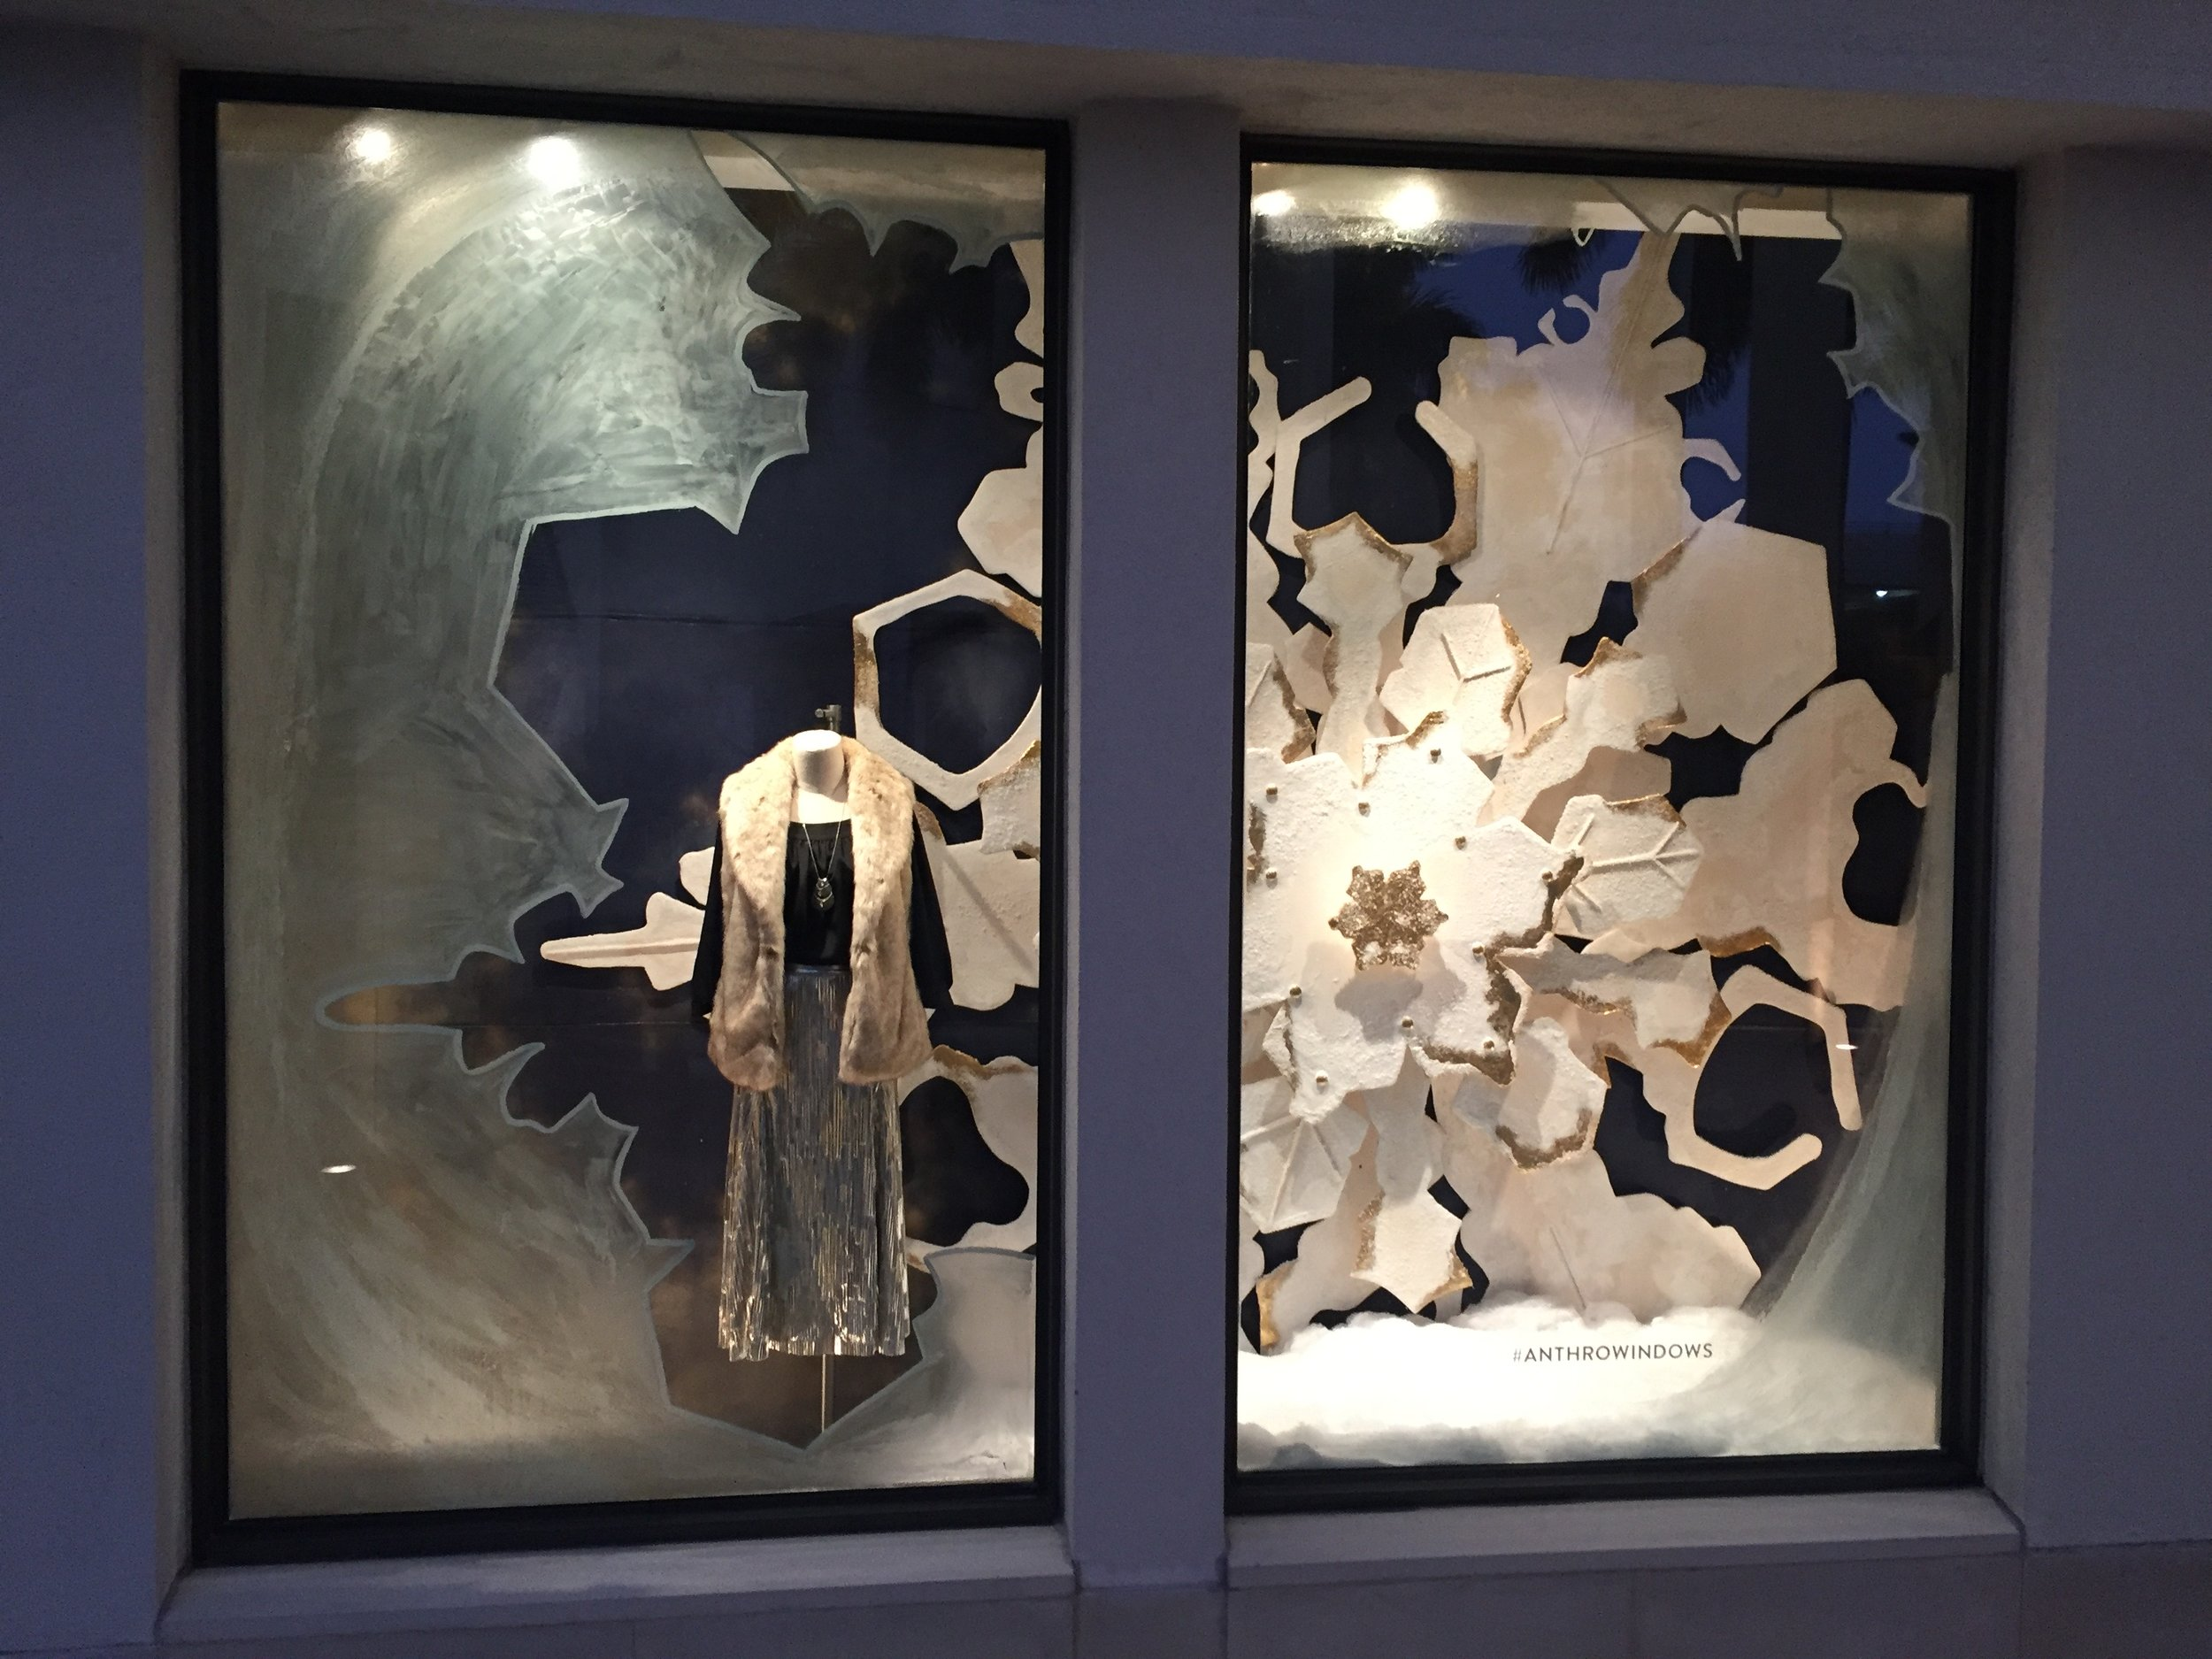 Holiday Window Display 2016 for Anthropologie